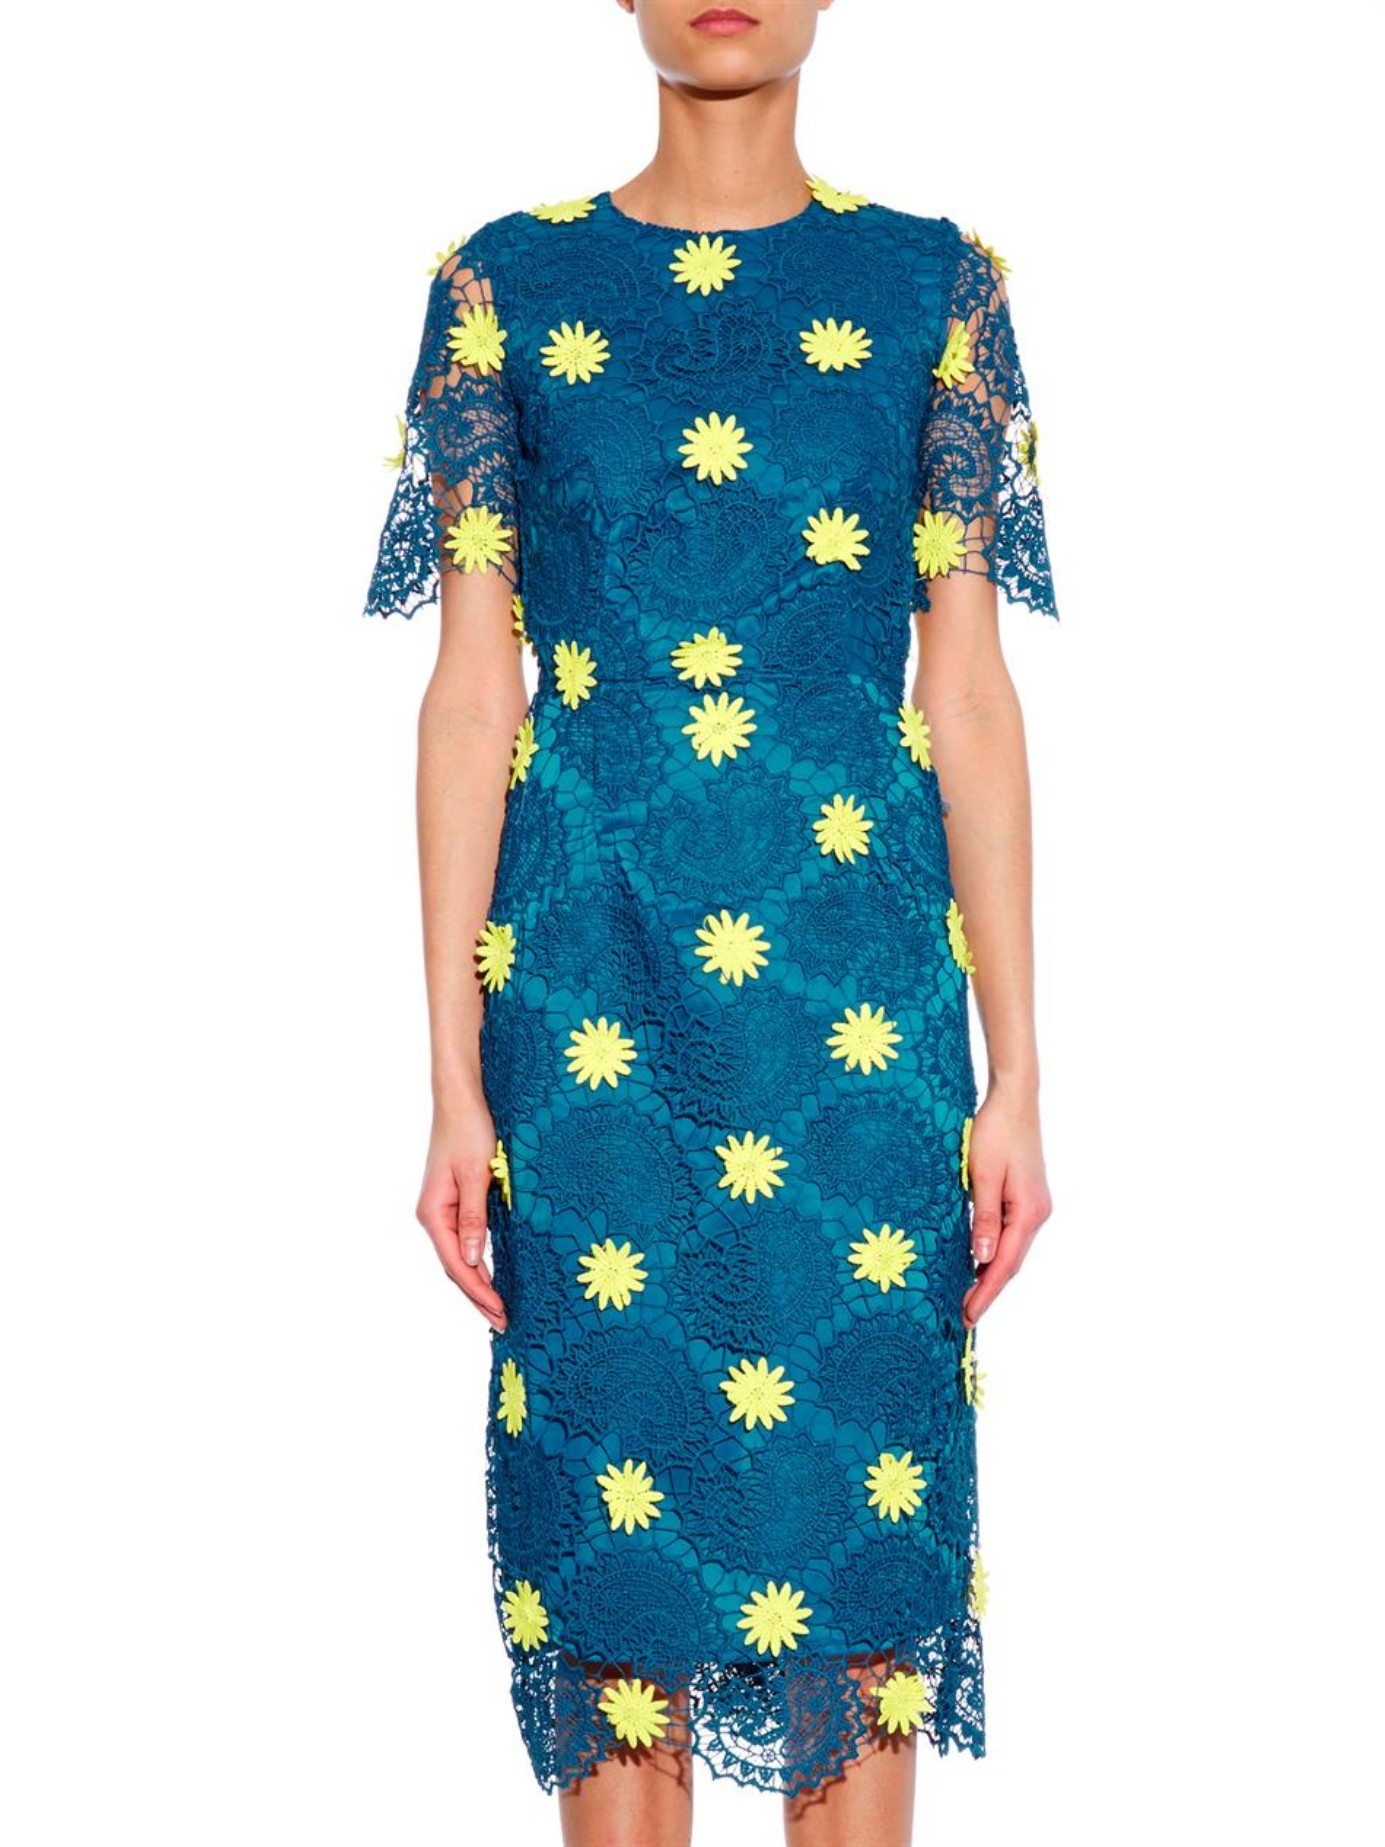 House of holland emily embroidered lace midi dress in blue